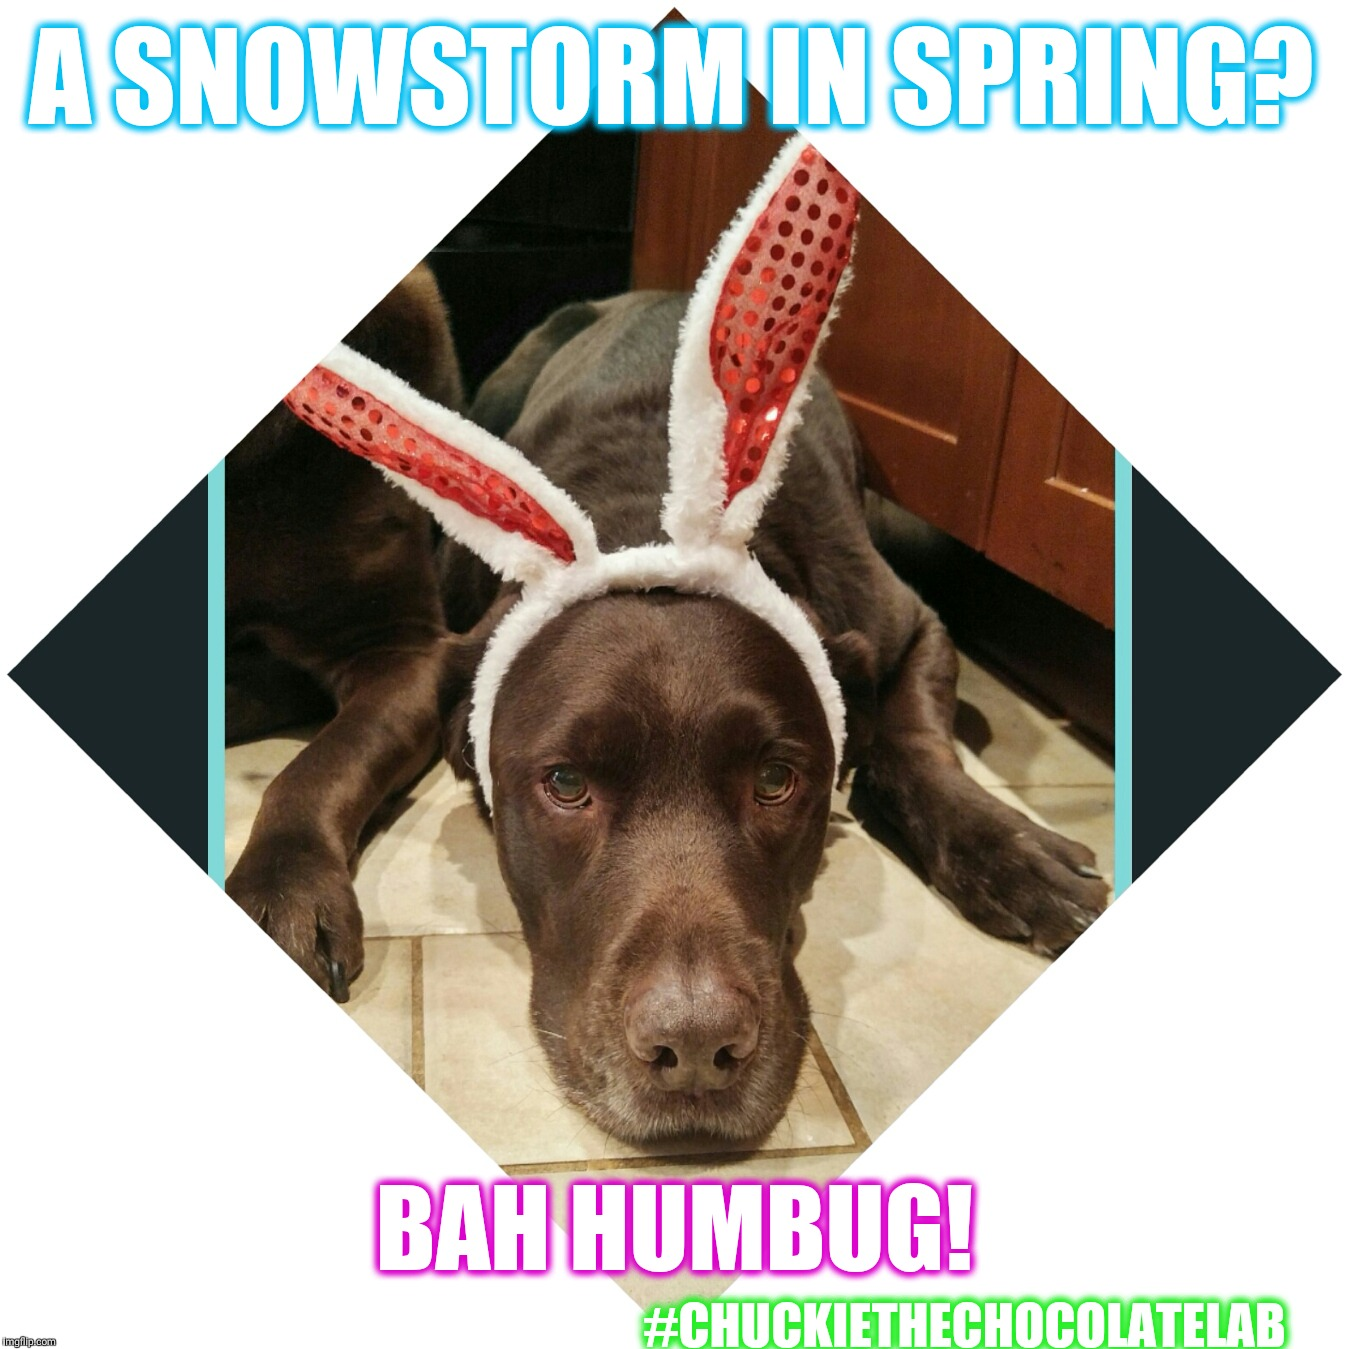 A snowstorm in spring? Bah humbug!  |  A SNOWSTORM IN SPRING? BAH HUMBUG! #CHUCKIETHECHOCOLATELAB | image tagged in chuckie the chocolate lab teamchuckie,snowstorm,spring,bah humbug,dogs,memes | made w/ Imgflip meme maker